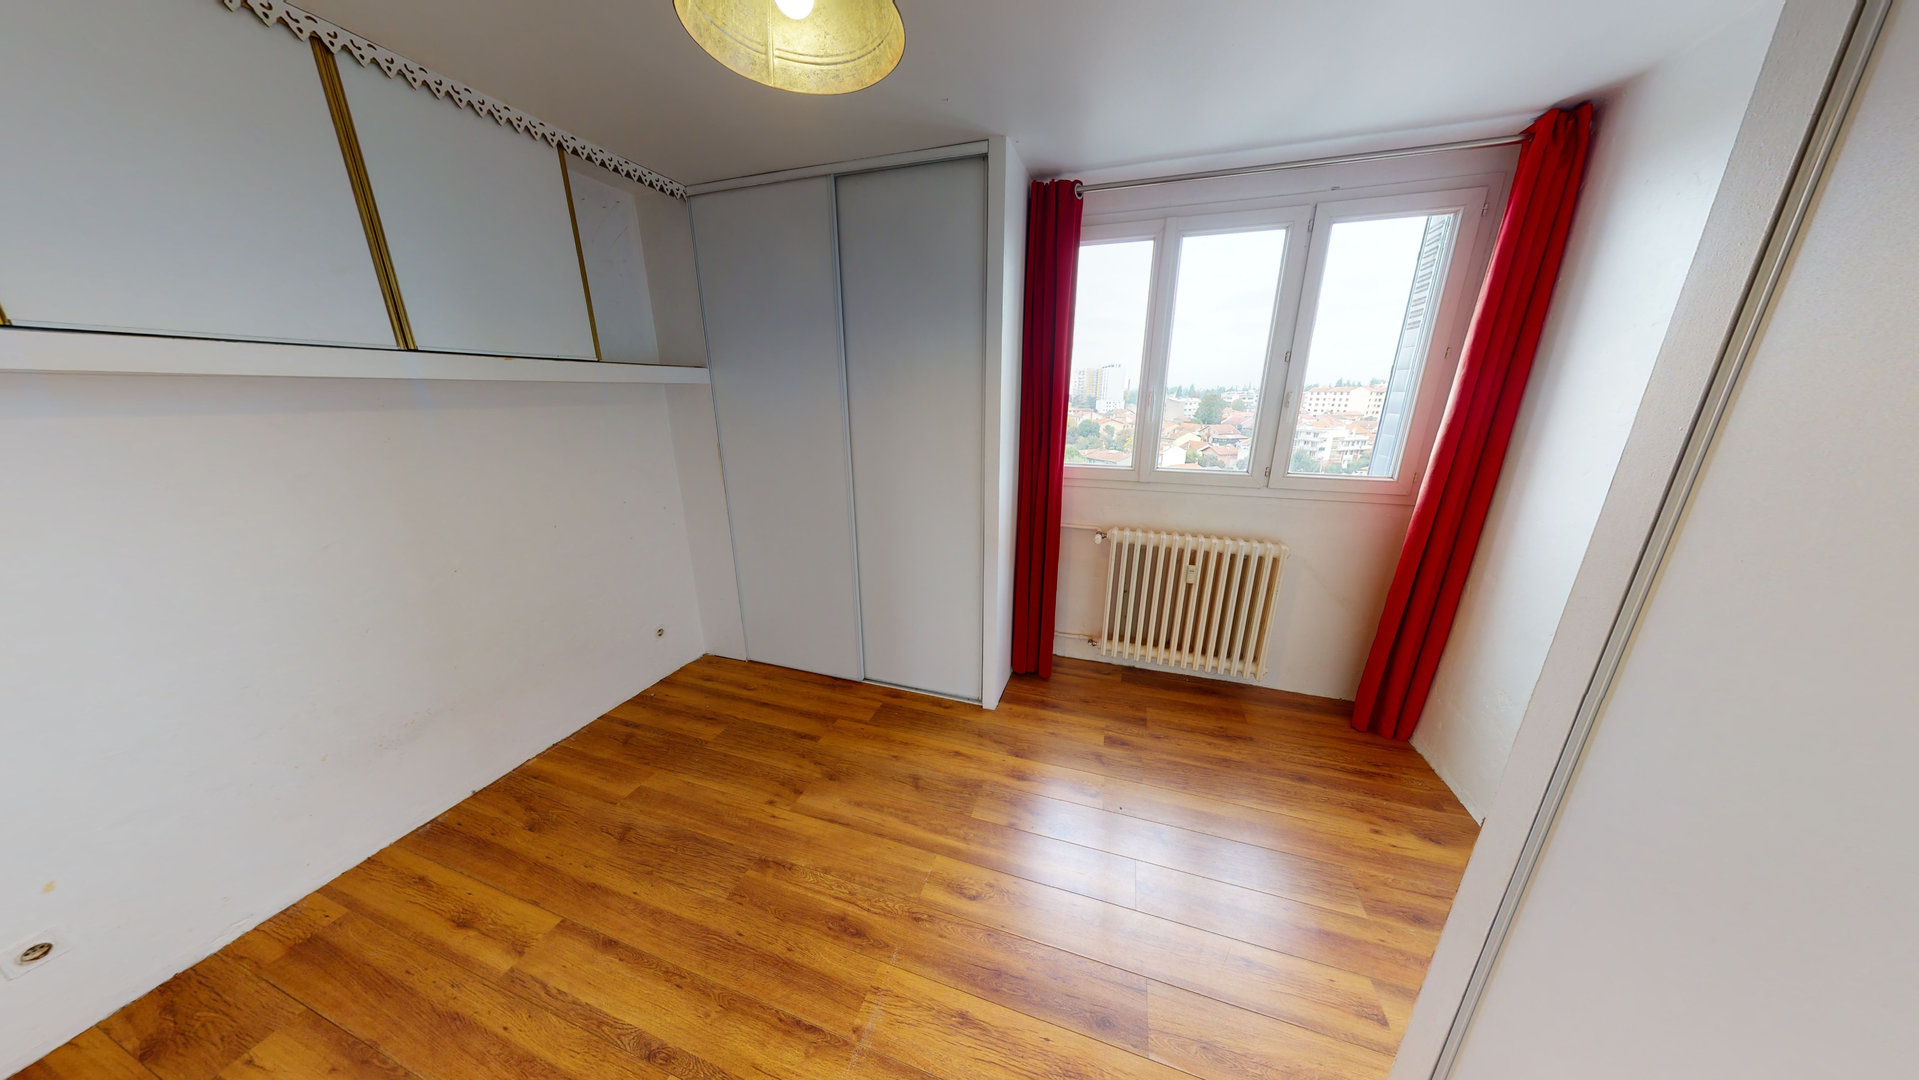 APPARTEMENT T3 - GUILHEMERY